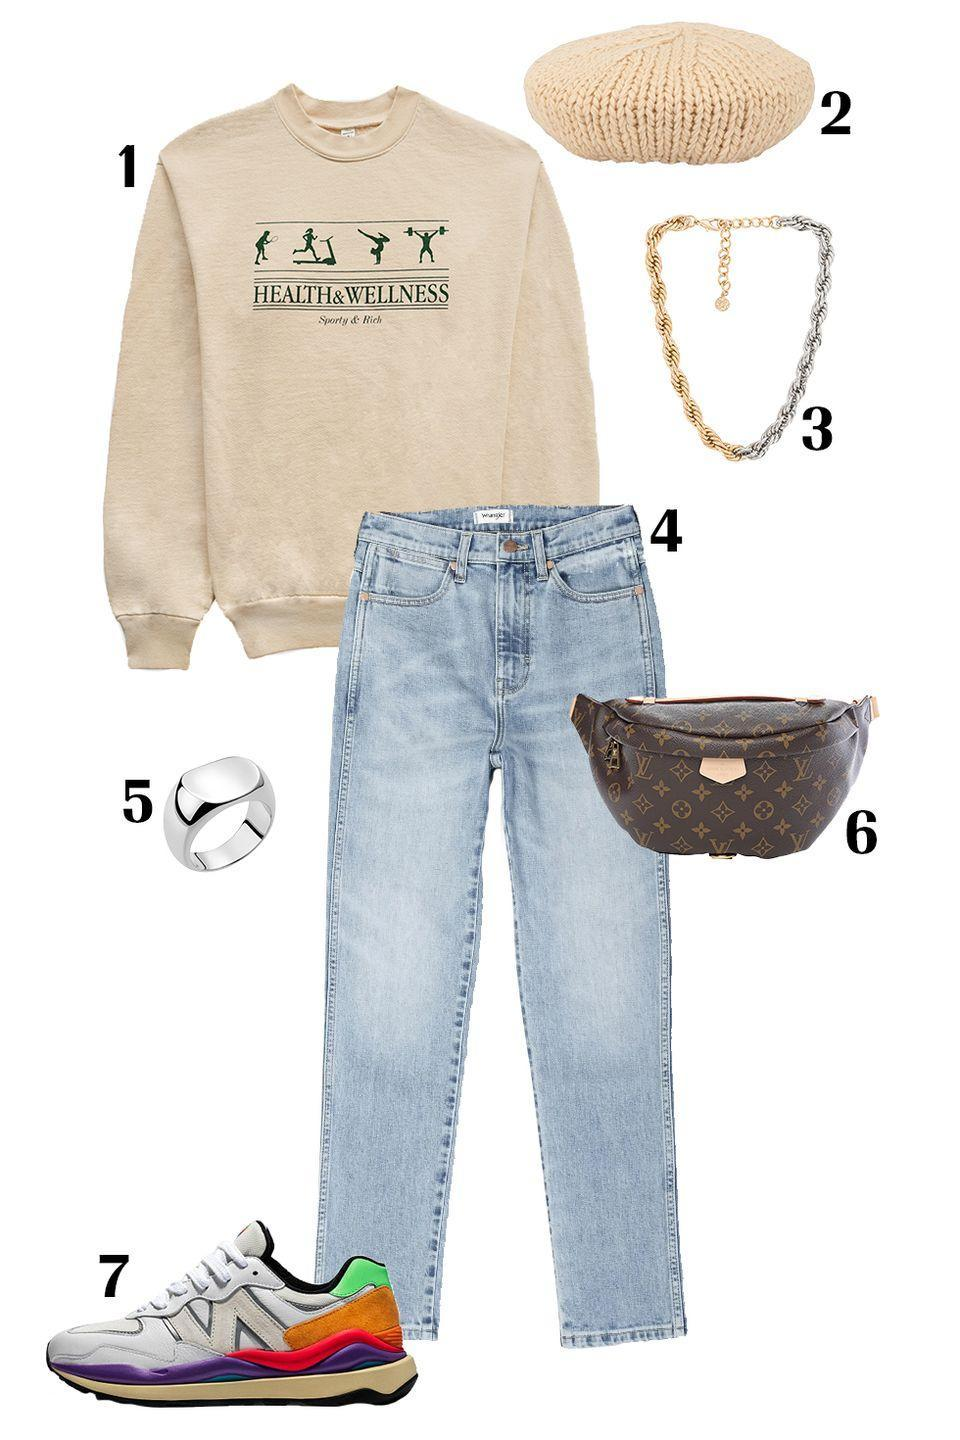 """<p>Don't overthink it—a beret can be worn with any outfit. So, consider wearing a beret with a relaxed look like this varsity-inspired jumper and worn in denim. The key is to accessorize correctly. Add trendy chunky sneakers and jewelry, a <a href=""""https://www.marieclaire.com/fashion/g26427196/best-fanny-packs/"""" rel=""""nofollow noopener"""" target=""""_blank"""" data-ylk=""""slk:belt bag"""" class=""""link rapid-noclick-resp"""">belt bag</a> to wear across your body, and a non-traditional cable knit beret to finish off the off-duty look, and you're out the door. </p><p>Shop the pieces:<em> <strong>1.</strong> </em><em><a href=""""https://www.sportyandrich.com/collections/shop-all/products/health-wellness-crewneck-cream-puff"""" rel=""""nofollow noopener"""" target=""""_blank"""" data-ylk=""""slk:Sporty & Rich Crewneck"""" class=""""link rapid-noclick-resp"""">Sporty & Rich Crewneck</a></em><em>,</em> $140; <strong>2.</strong> <em><a href=""""https://www.farfetch.com/shopping/women/undercover-cable-knit-beret-item-14509555.aspx?storeid=10321"""" rel=""""nofollow noopener"""" target=""""_blank"""" data-ylk=""""slk:Undercover Knit Beret"""" class=""""link rapid-noclick-resp"""">Undercover Knit Beret</a></em>, $205; <strong>3.</strong> <em><a href=""""https://www.revolve.com/petit-moments-leon-set-in-mixed-metal/dp/PETM-WL75/?d=Womens&product=PETM-WL75&bneEl=true&"""" rel=""""nofollow noopener"""" target=""""_blank"""" data-ylk=""""slk:Leon Set Necklace"""" class=""""link rapid-noclick-resp"""">Leon Set Necklace</a></em>, $80; <strong>4.</strong> <em><a href=""""https://www.nordstrom.com/s/wrangler-wild-west-high-waist-straight-leg-ankle-jeans/5734626?origin=category-personalizedsort&breadcrumb=Home%2FWomen%2FClothing%2FJeans%20%26%20Denim&color=sunny"""" rel=""""nofollow noopener"""" target=""""_blank"""" data-ylk=""""slk:Wrangler Denim Jeans"""" class=""""link rapid-noclick-resp"""">Wrangler Denim Jeans</a></em>, $98; <strong>5.</strong> <em><a href=""""https://jenniferfisherjewelry.com/collections/rings-b/products/horizontal-scoop-ring"""" rel=""""nofollow noopener"""" target=""""_blank"""" data-ylk=""""slk:Jennifer Fisher Ring"""